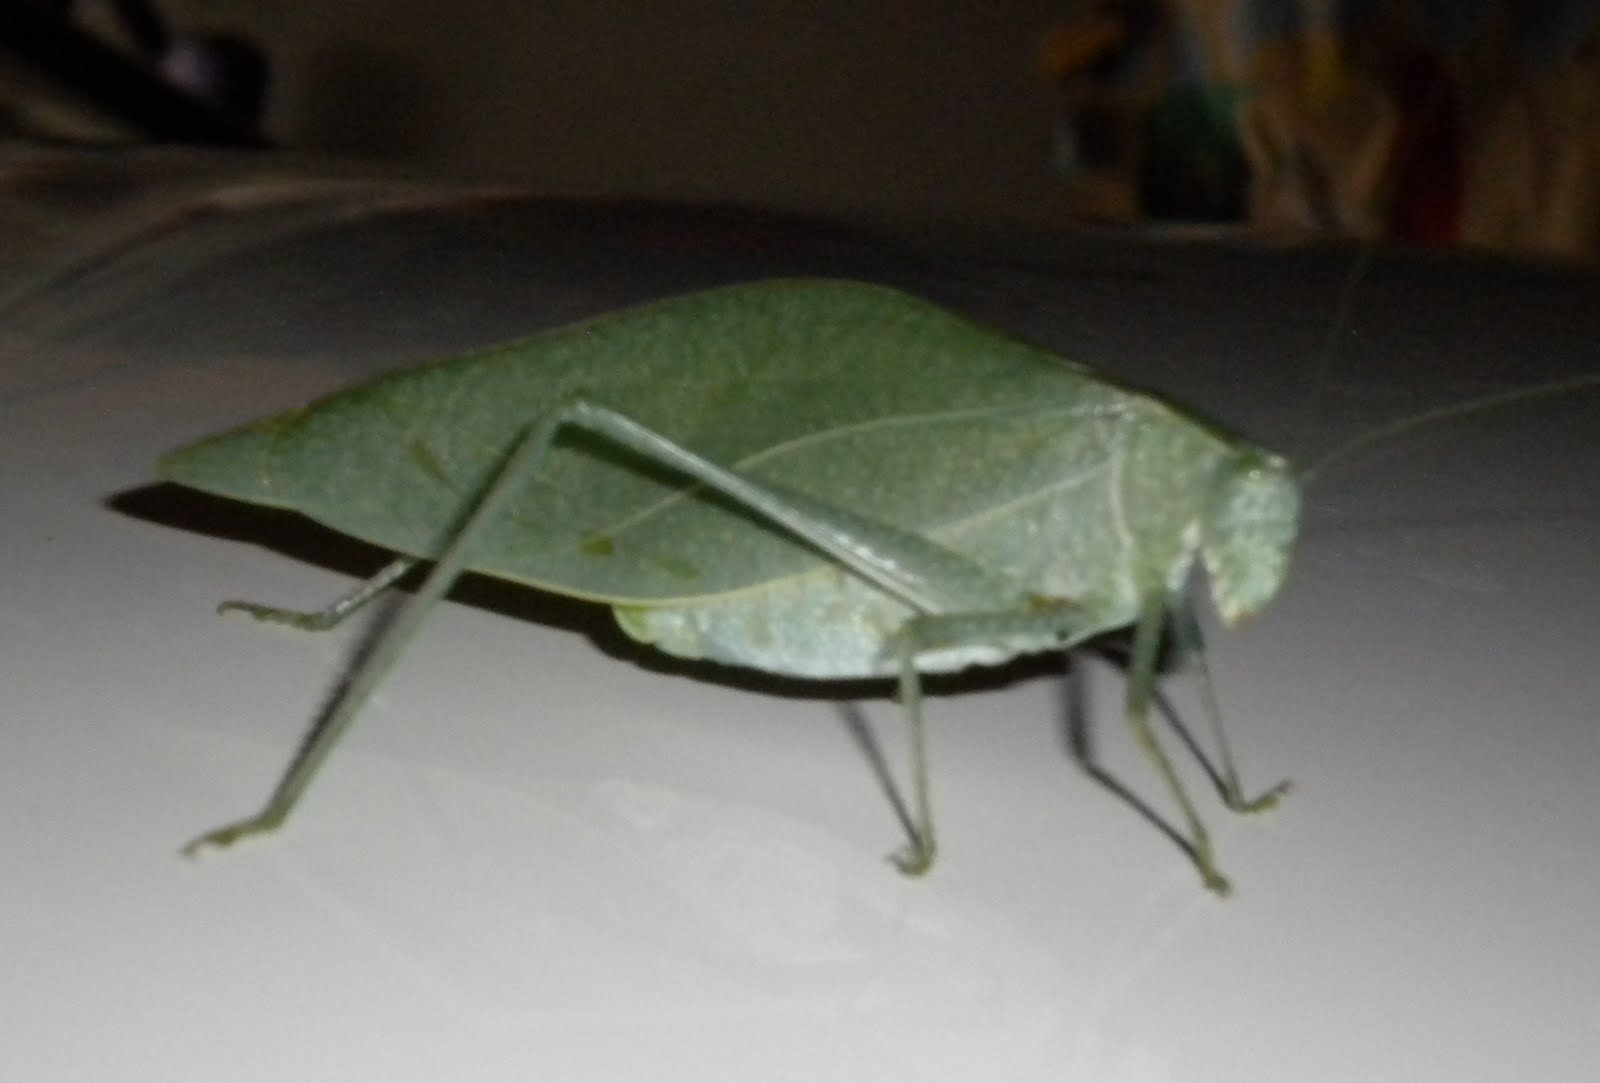 Fuchsiastars lunarnotes leaf insect wisdom friday august 13 2010 buycottarizona